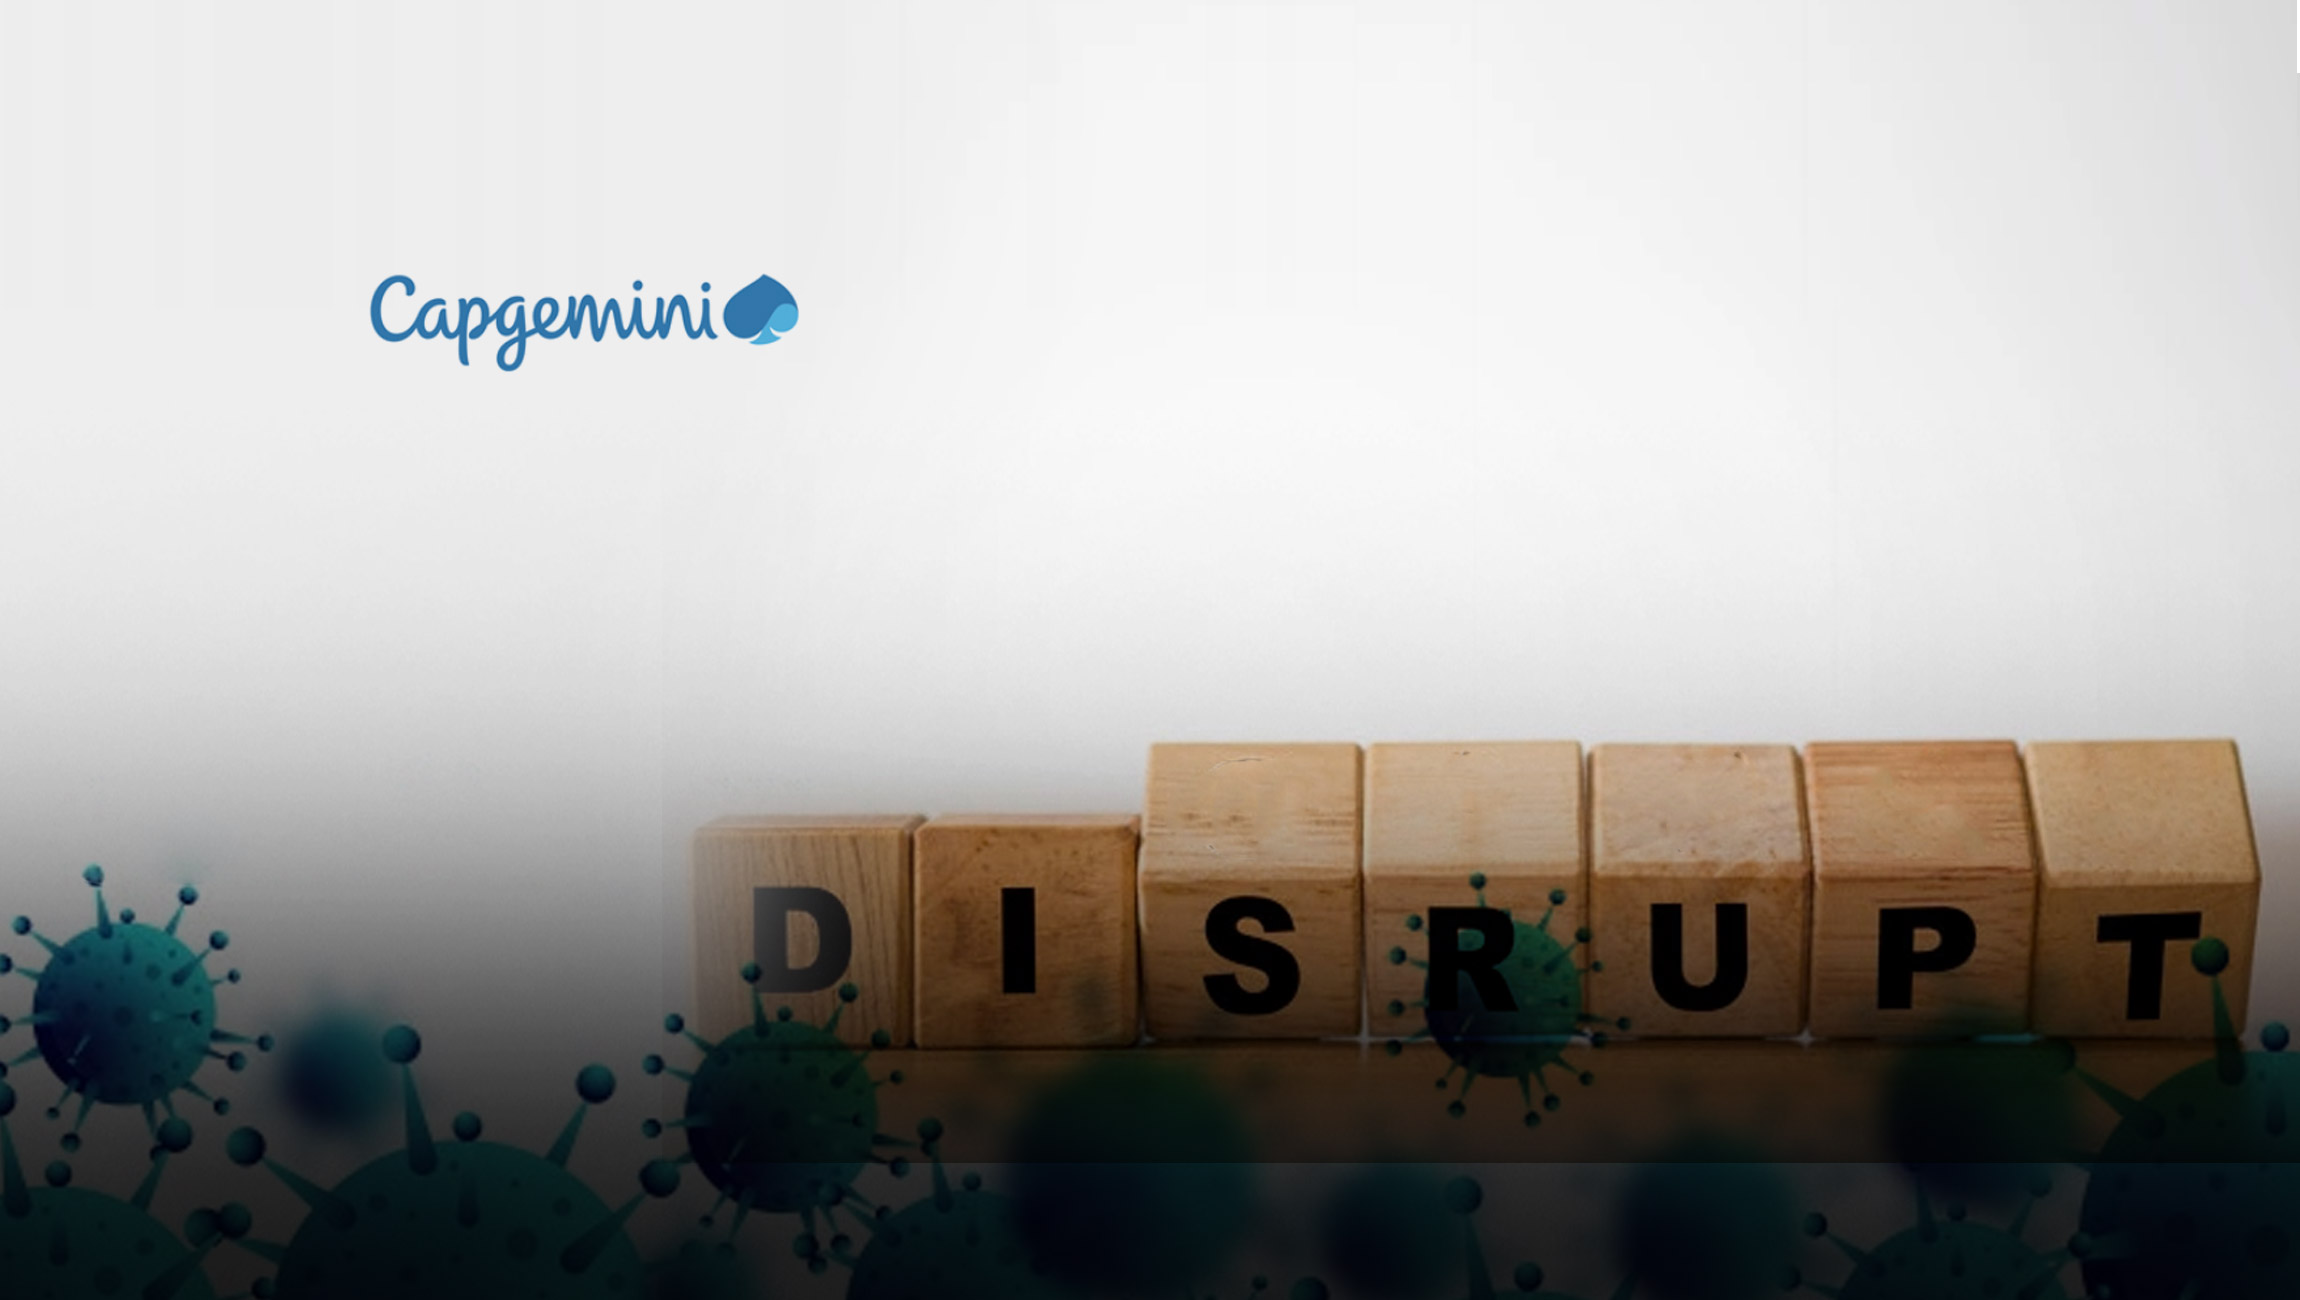 Capgemini-Press-Release--Building-supply-chain-resilience-is-a-priority-for-two-thirds-of-organizations-after-COVID-19-disruption